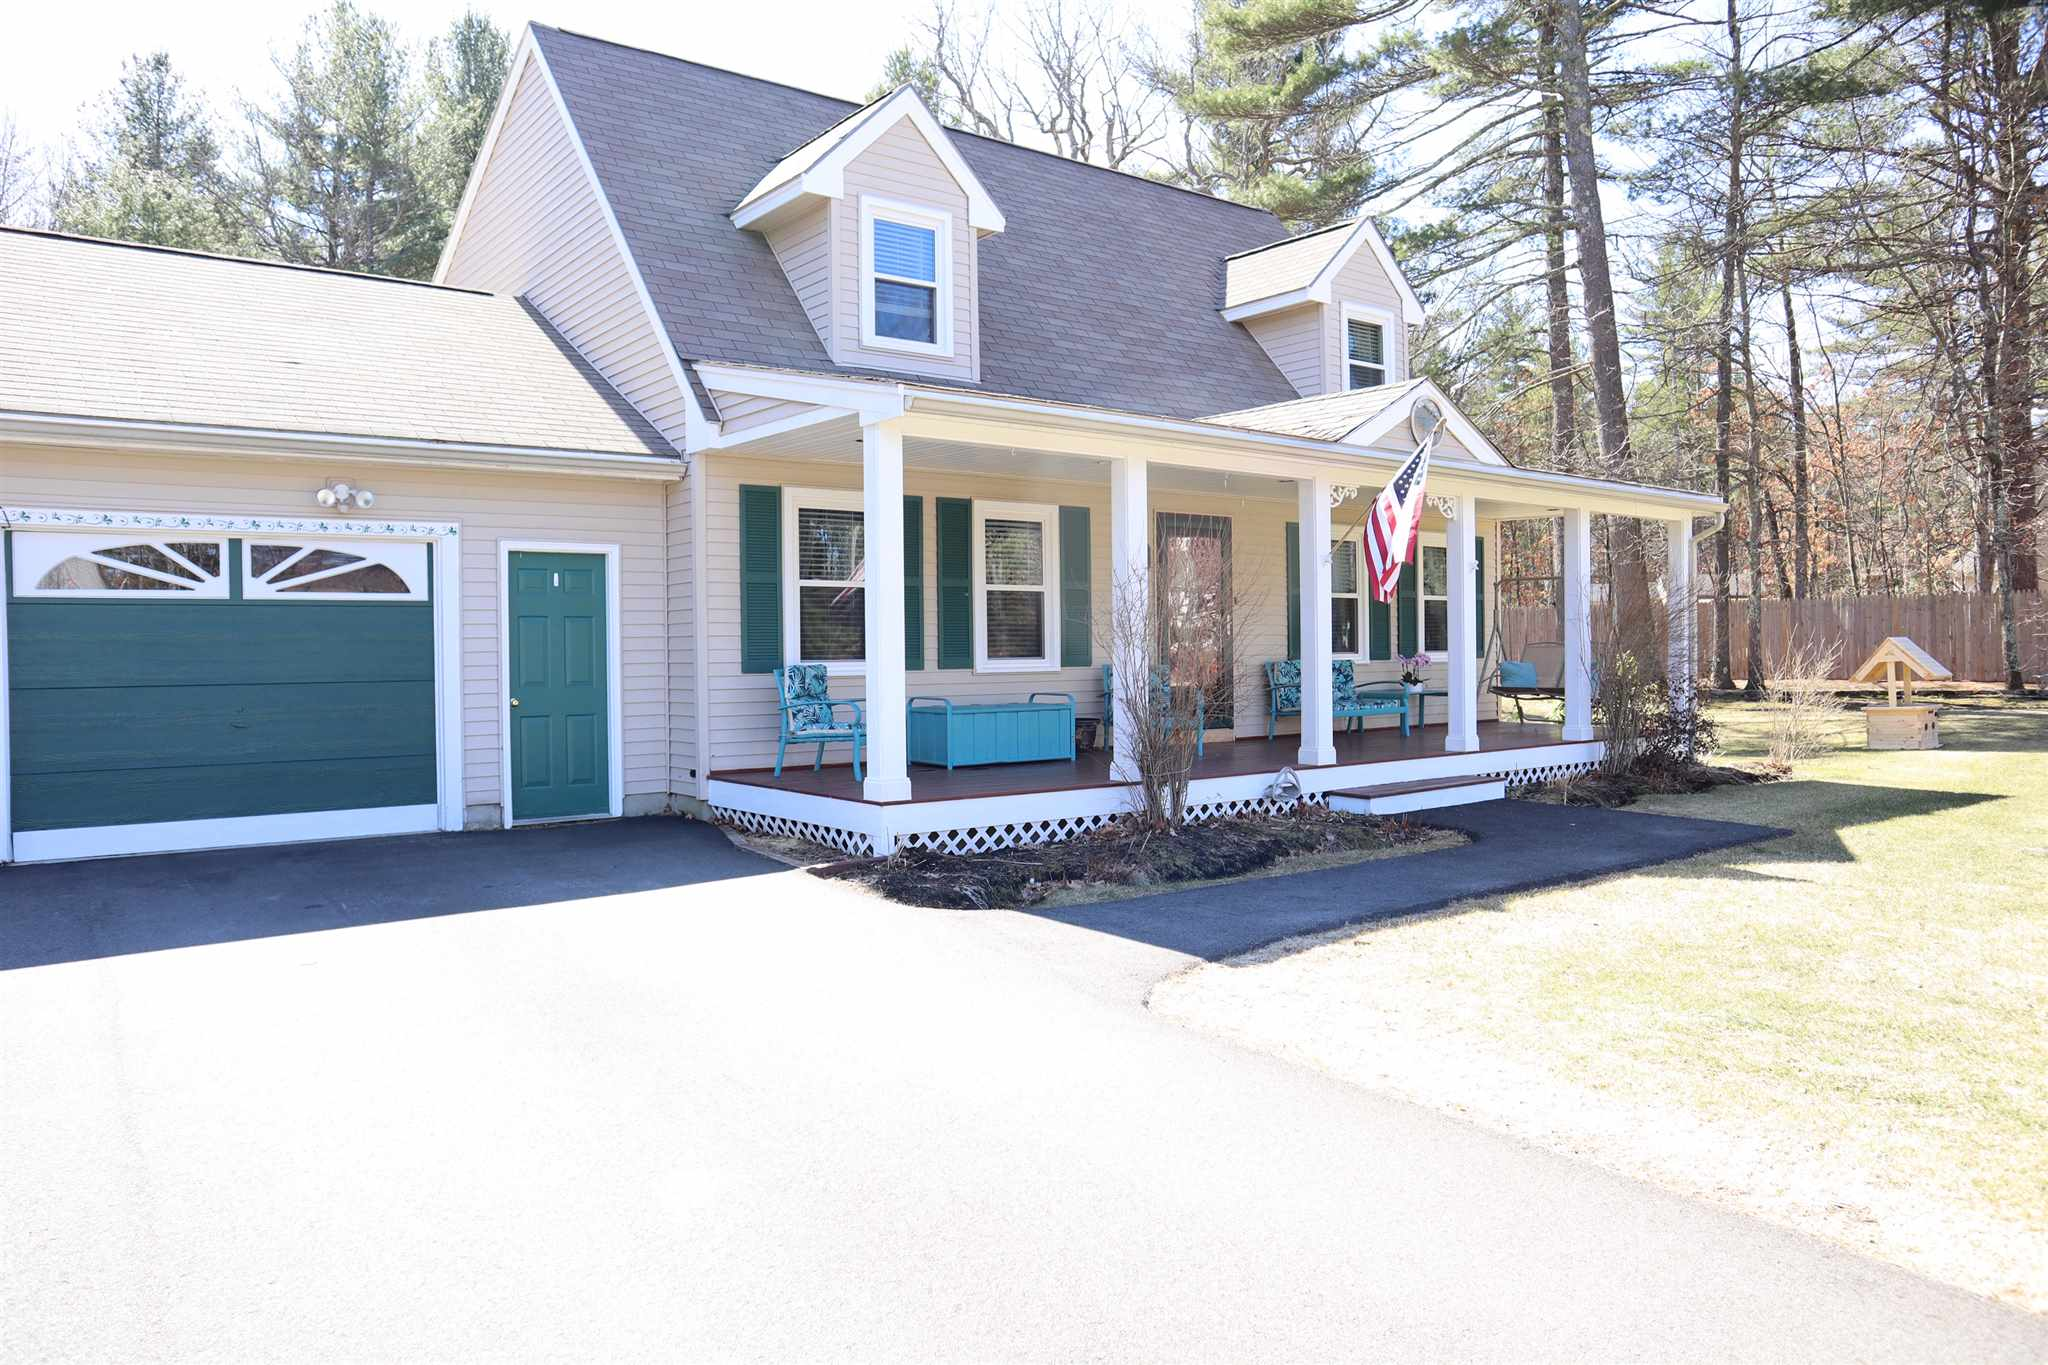 MLS 4799270: 27 Wren Street, Litchfield NH